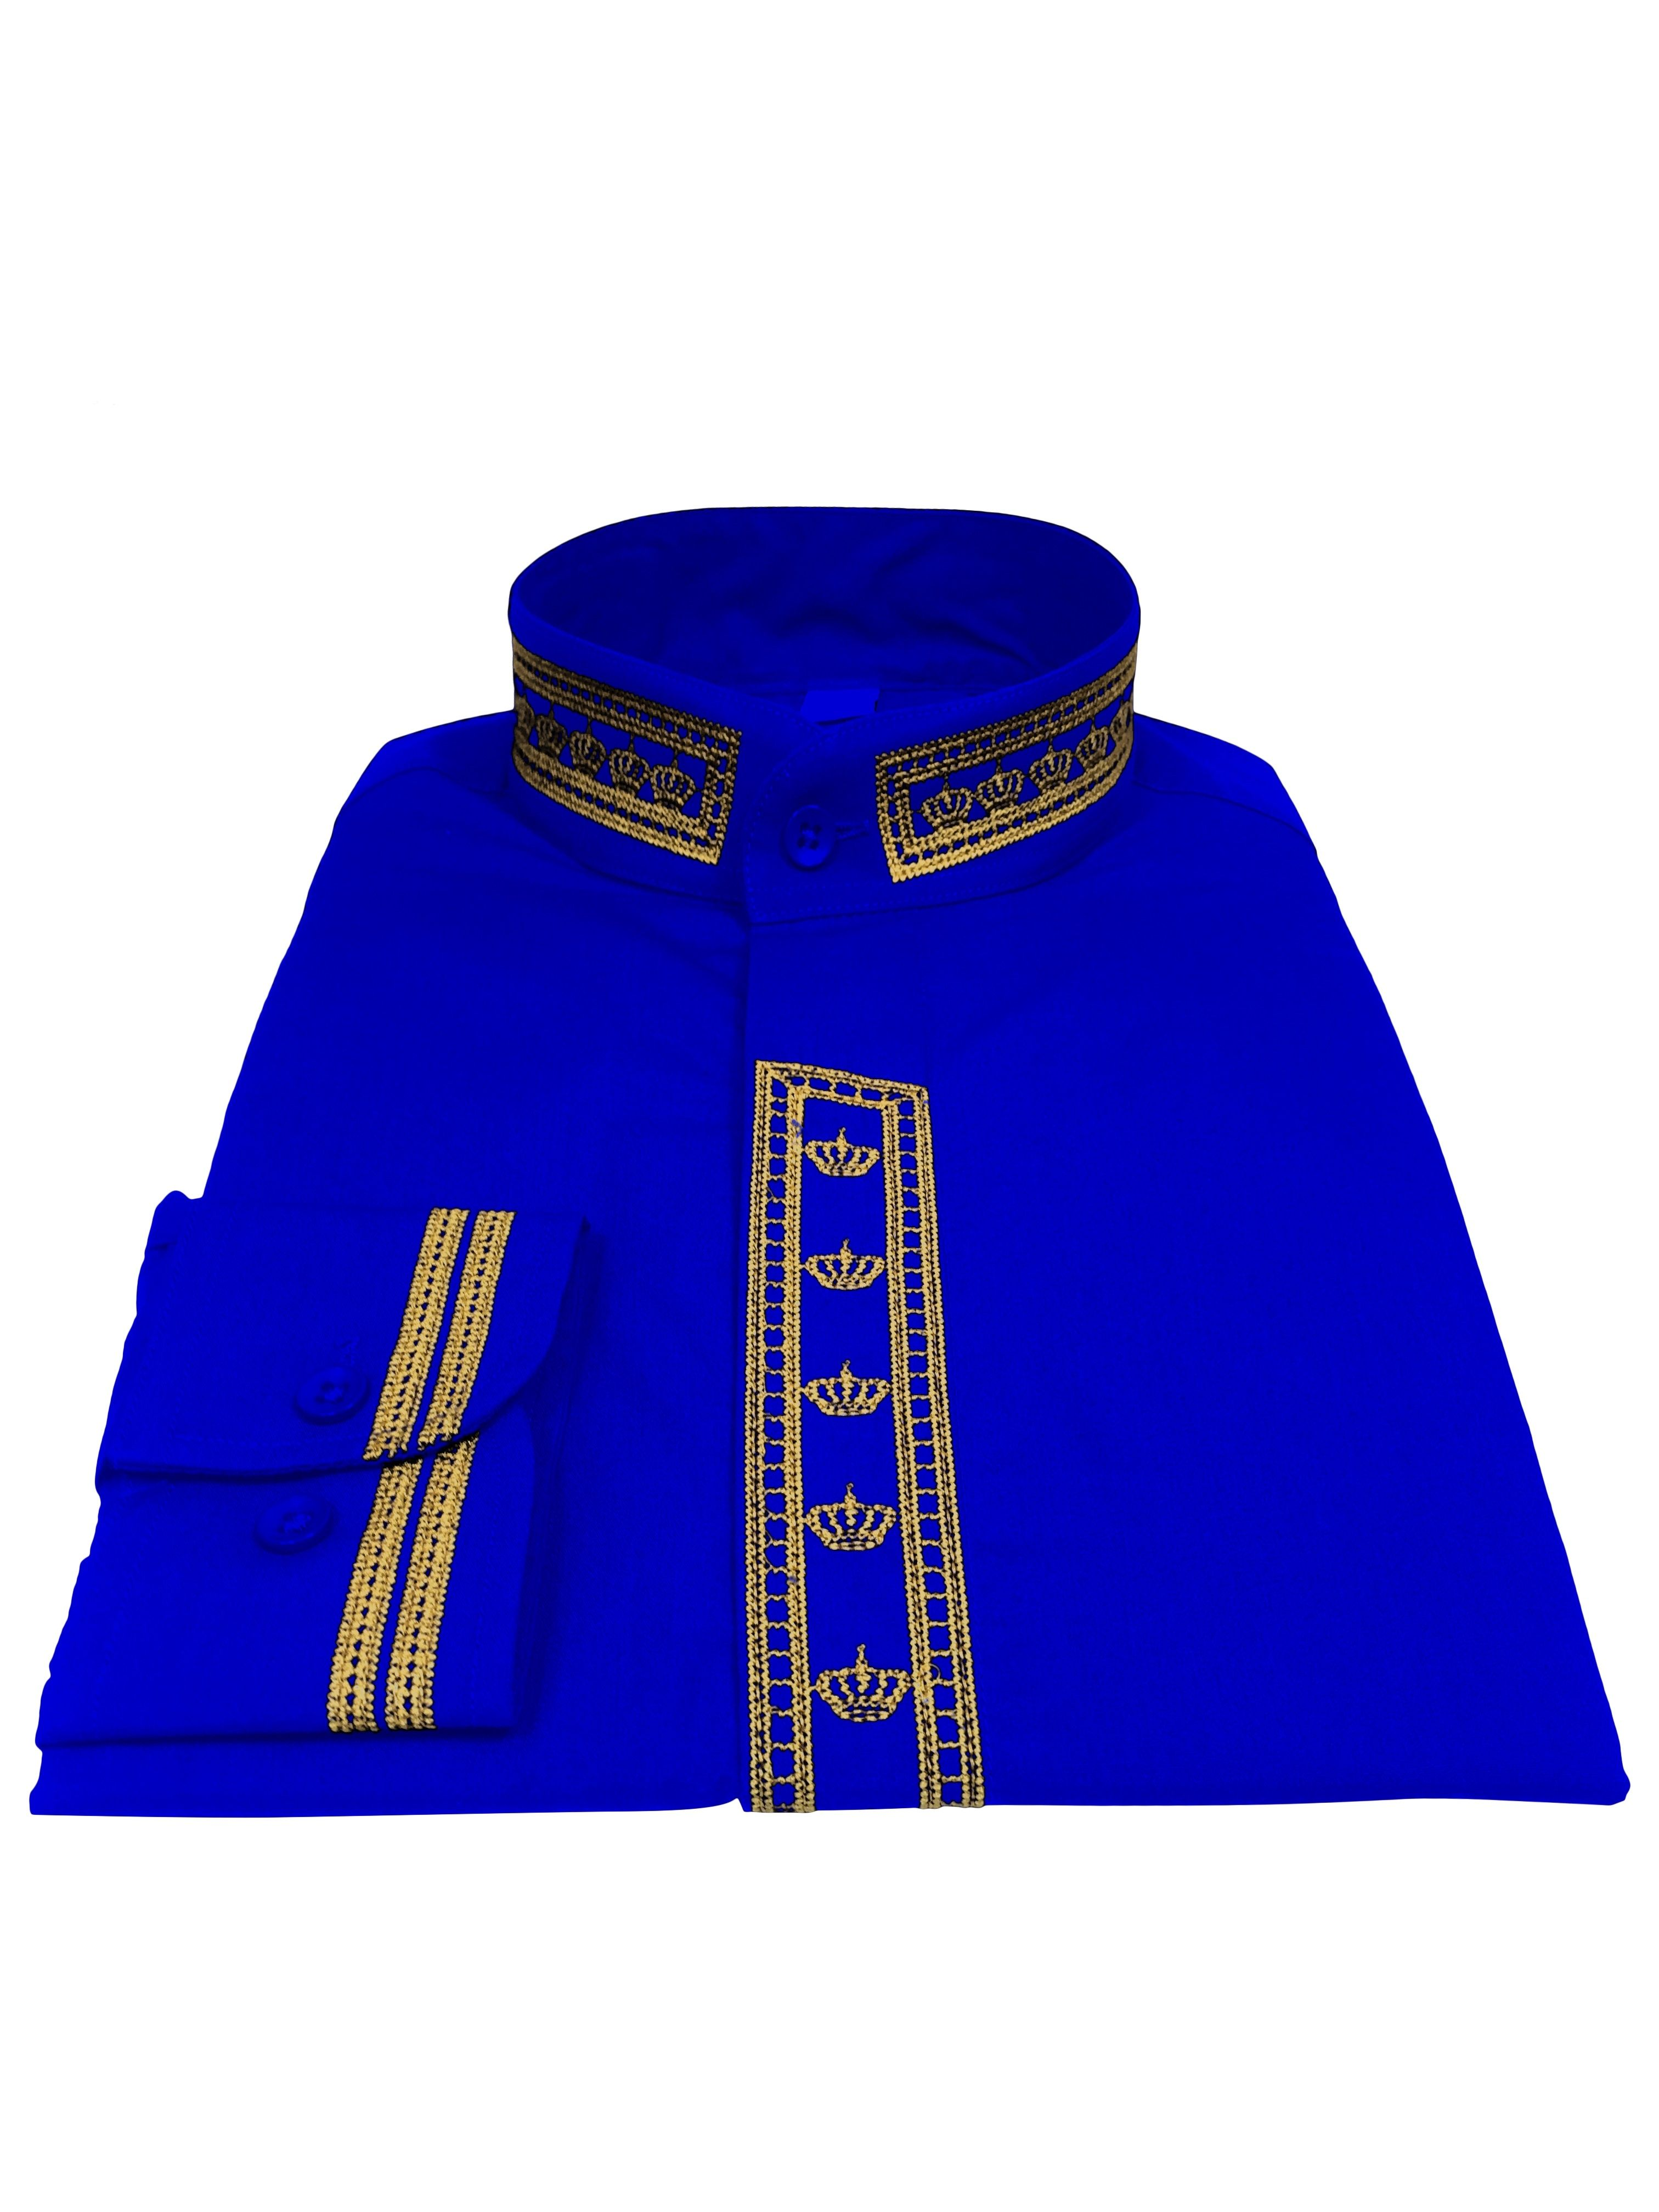 347. Men's Clergy Shirt With Rejoice Crown Fine Embroidery Long Sleeves- Royal/Gold